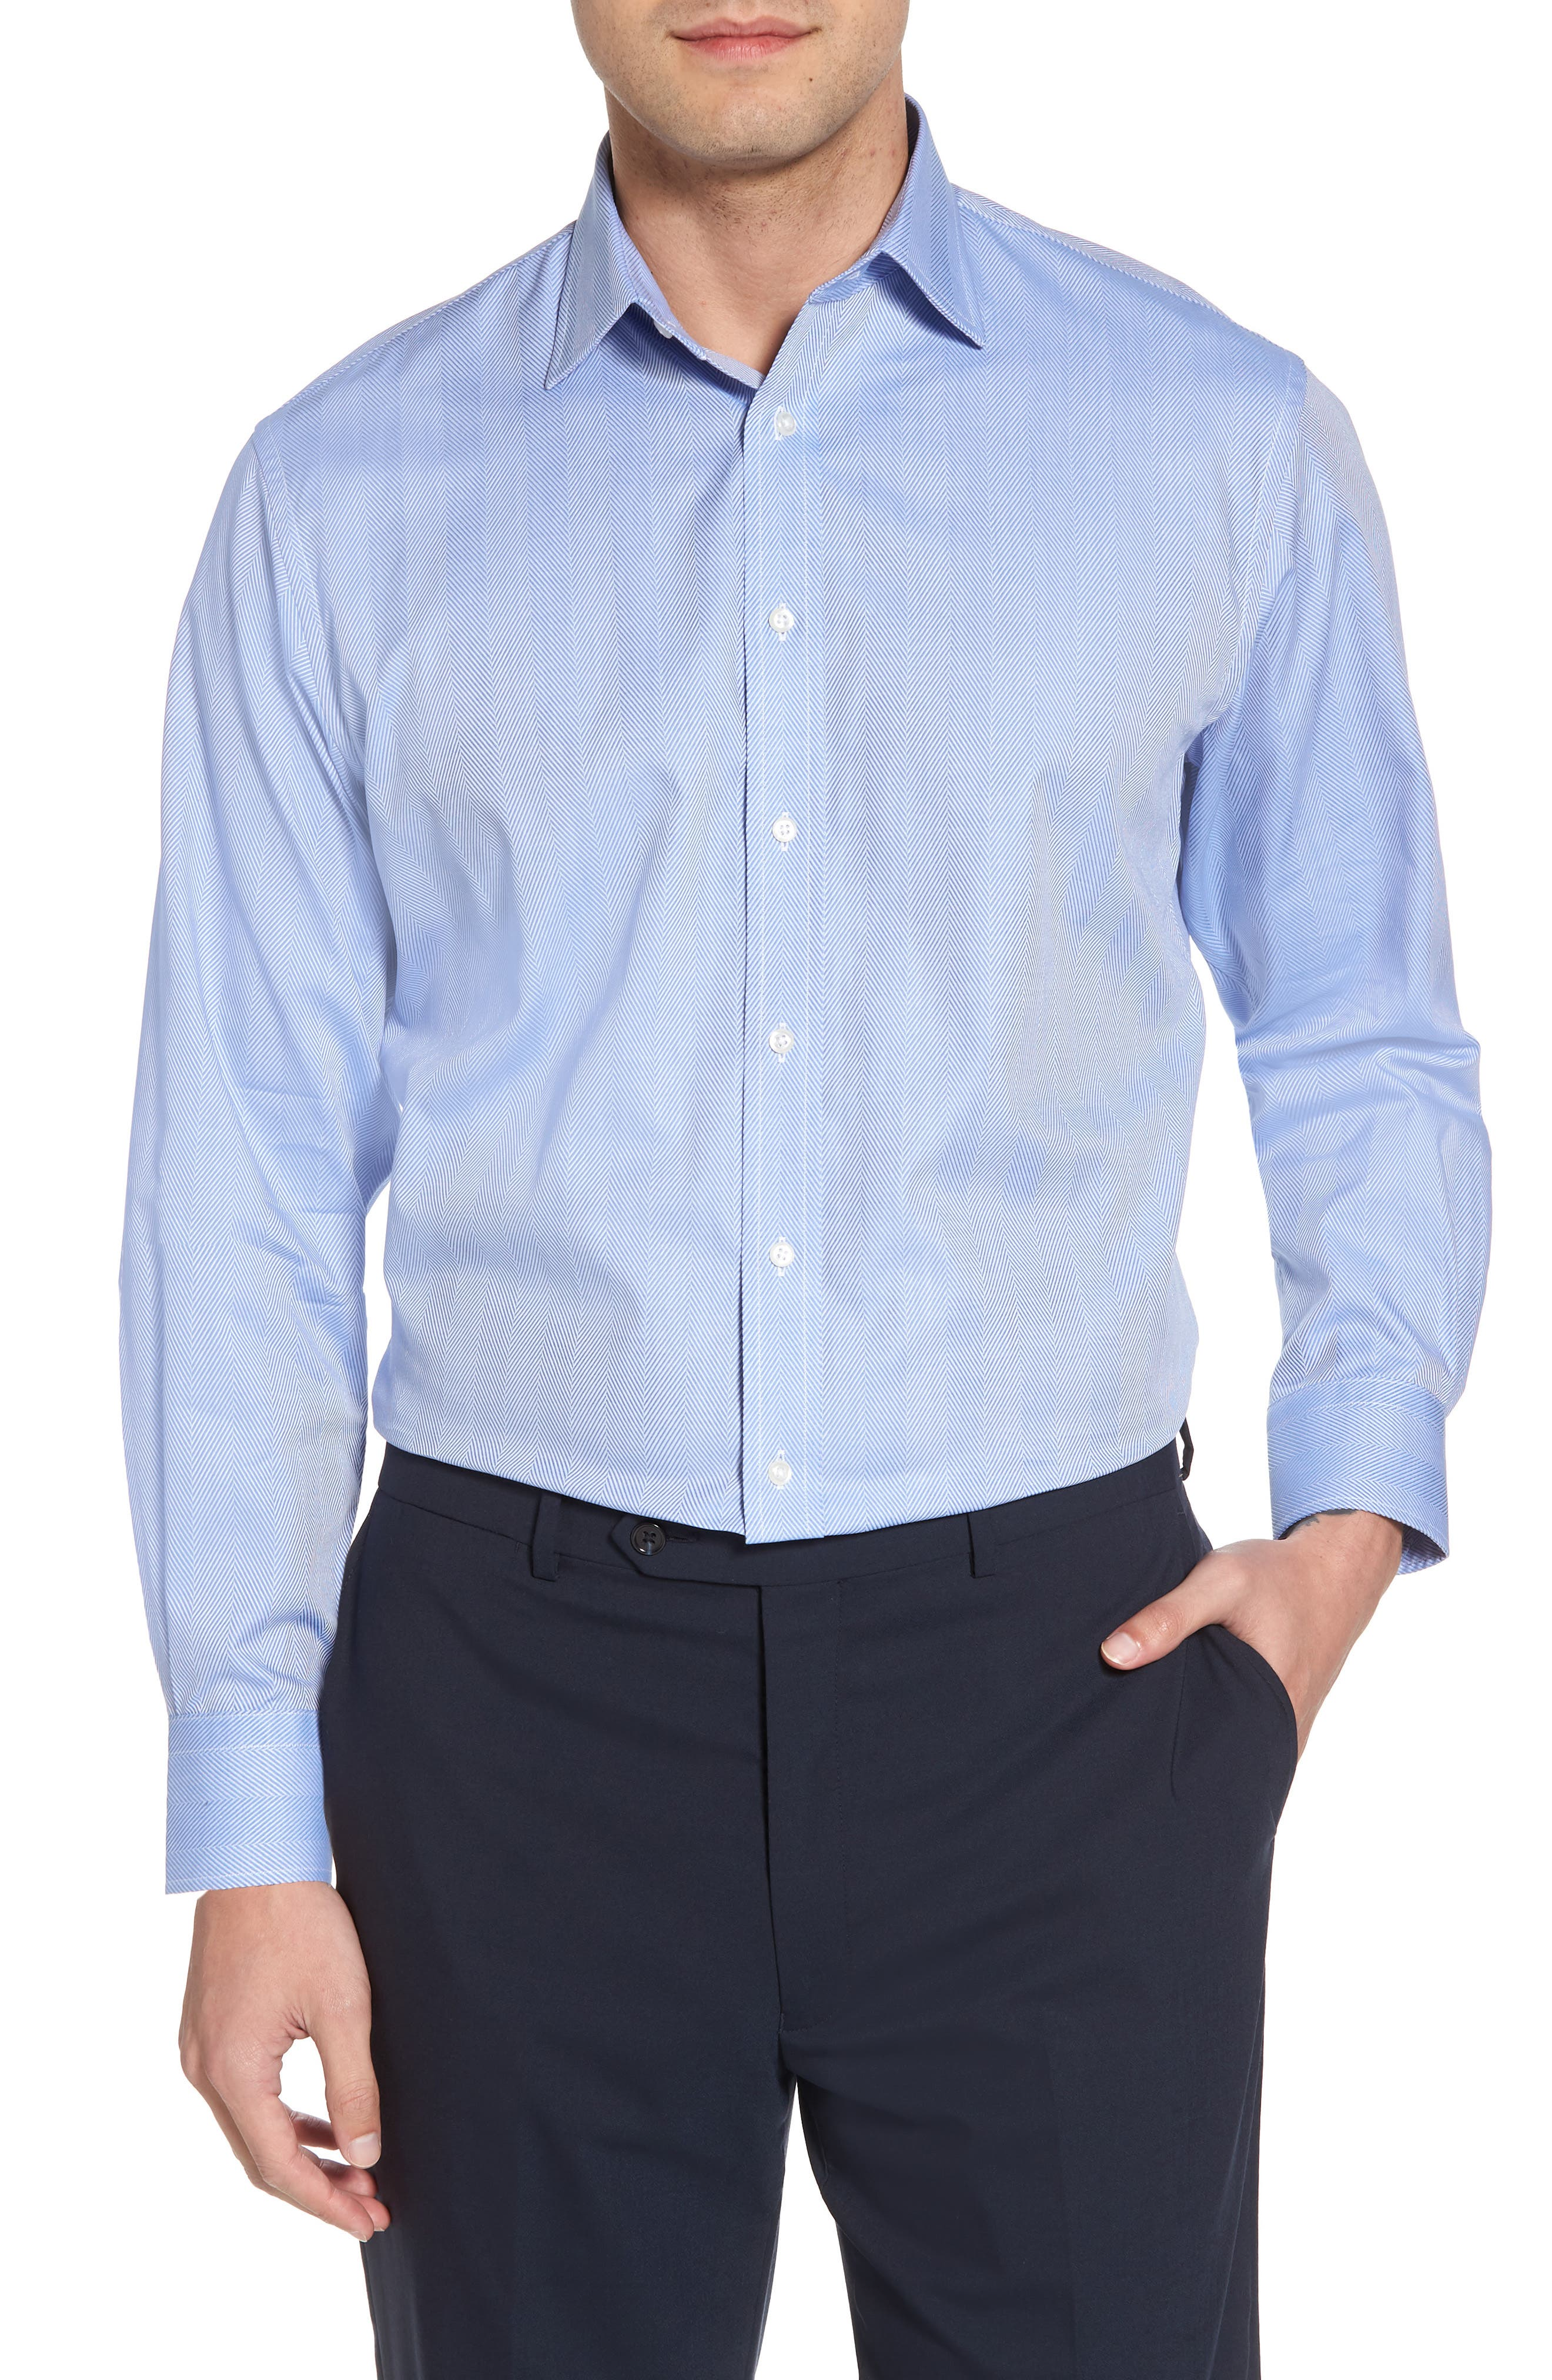 Alternate Image 1 Selected - Nordstrom Men's Shop Traditional Fit Herringbone Dress Shirt